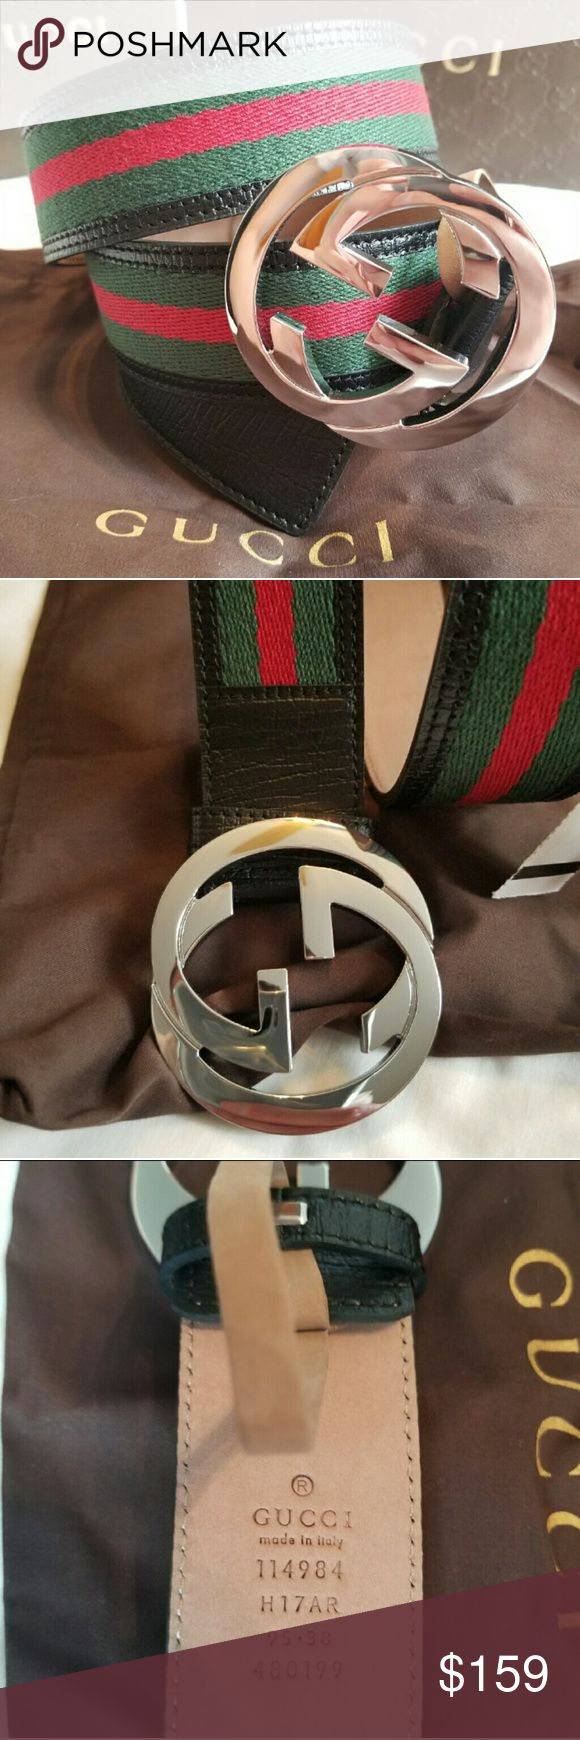 Authentic Gucci Belt Black Green Red Stripes Brand New Gucci Belt Black Green Red Stripes with Silver GG Buckle. HOT! Comes with tags, dust bag and box. Fast same day Shipping via USPS. All reasonable offers accepted. Gucci Accessories Belts